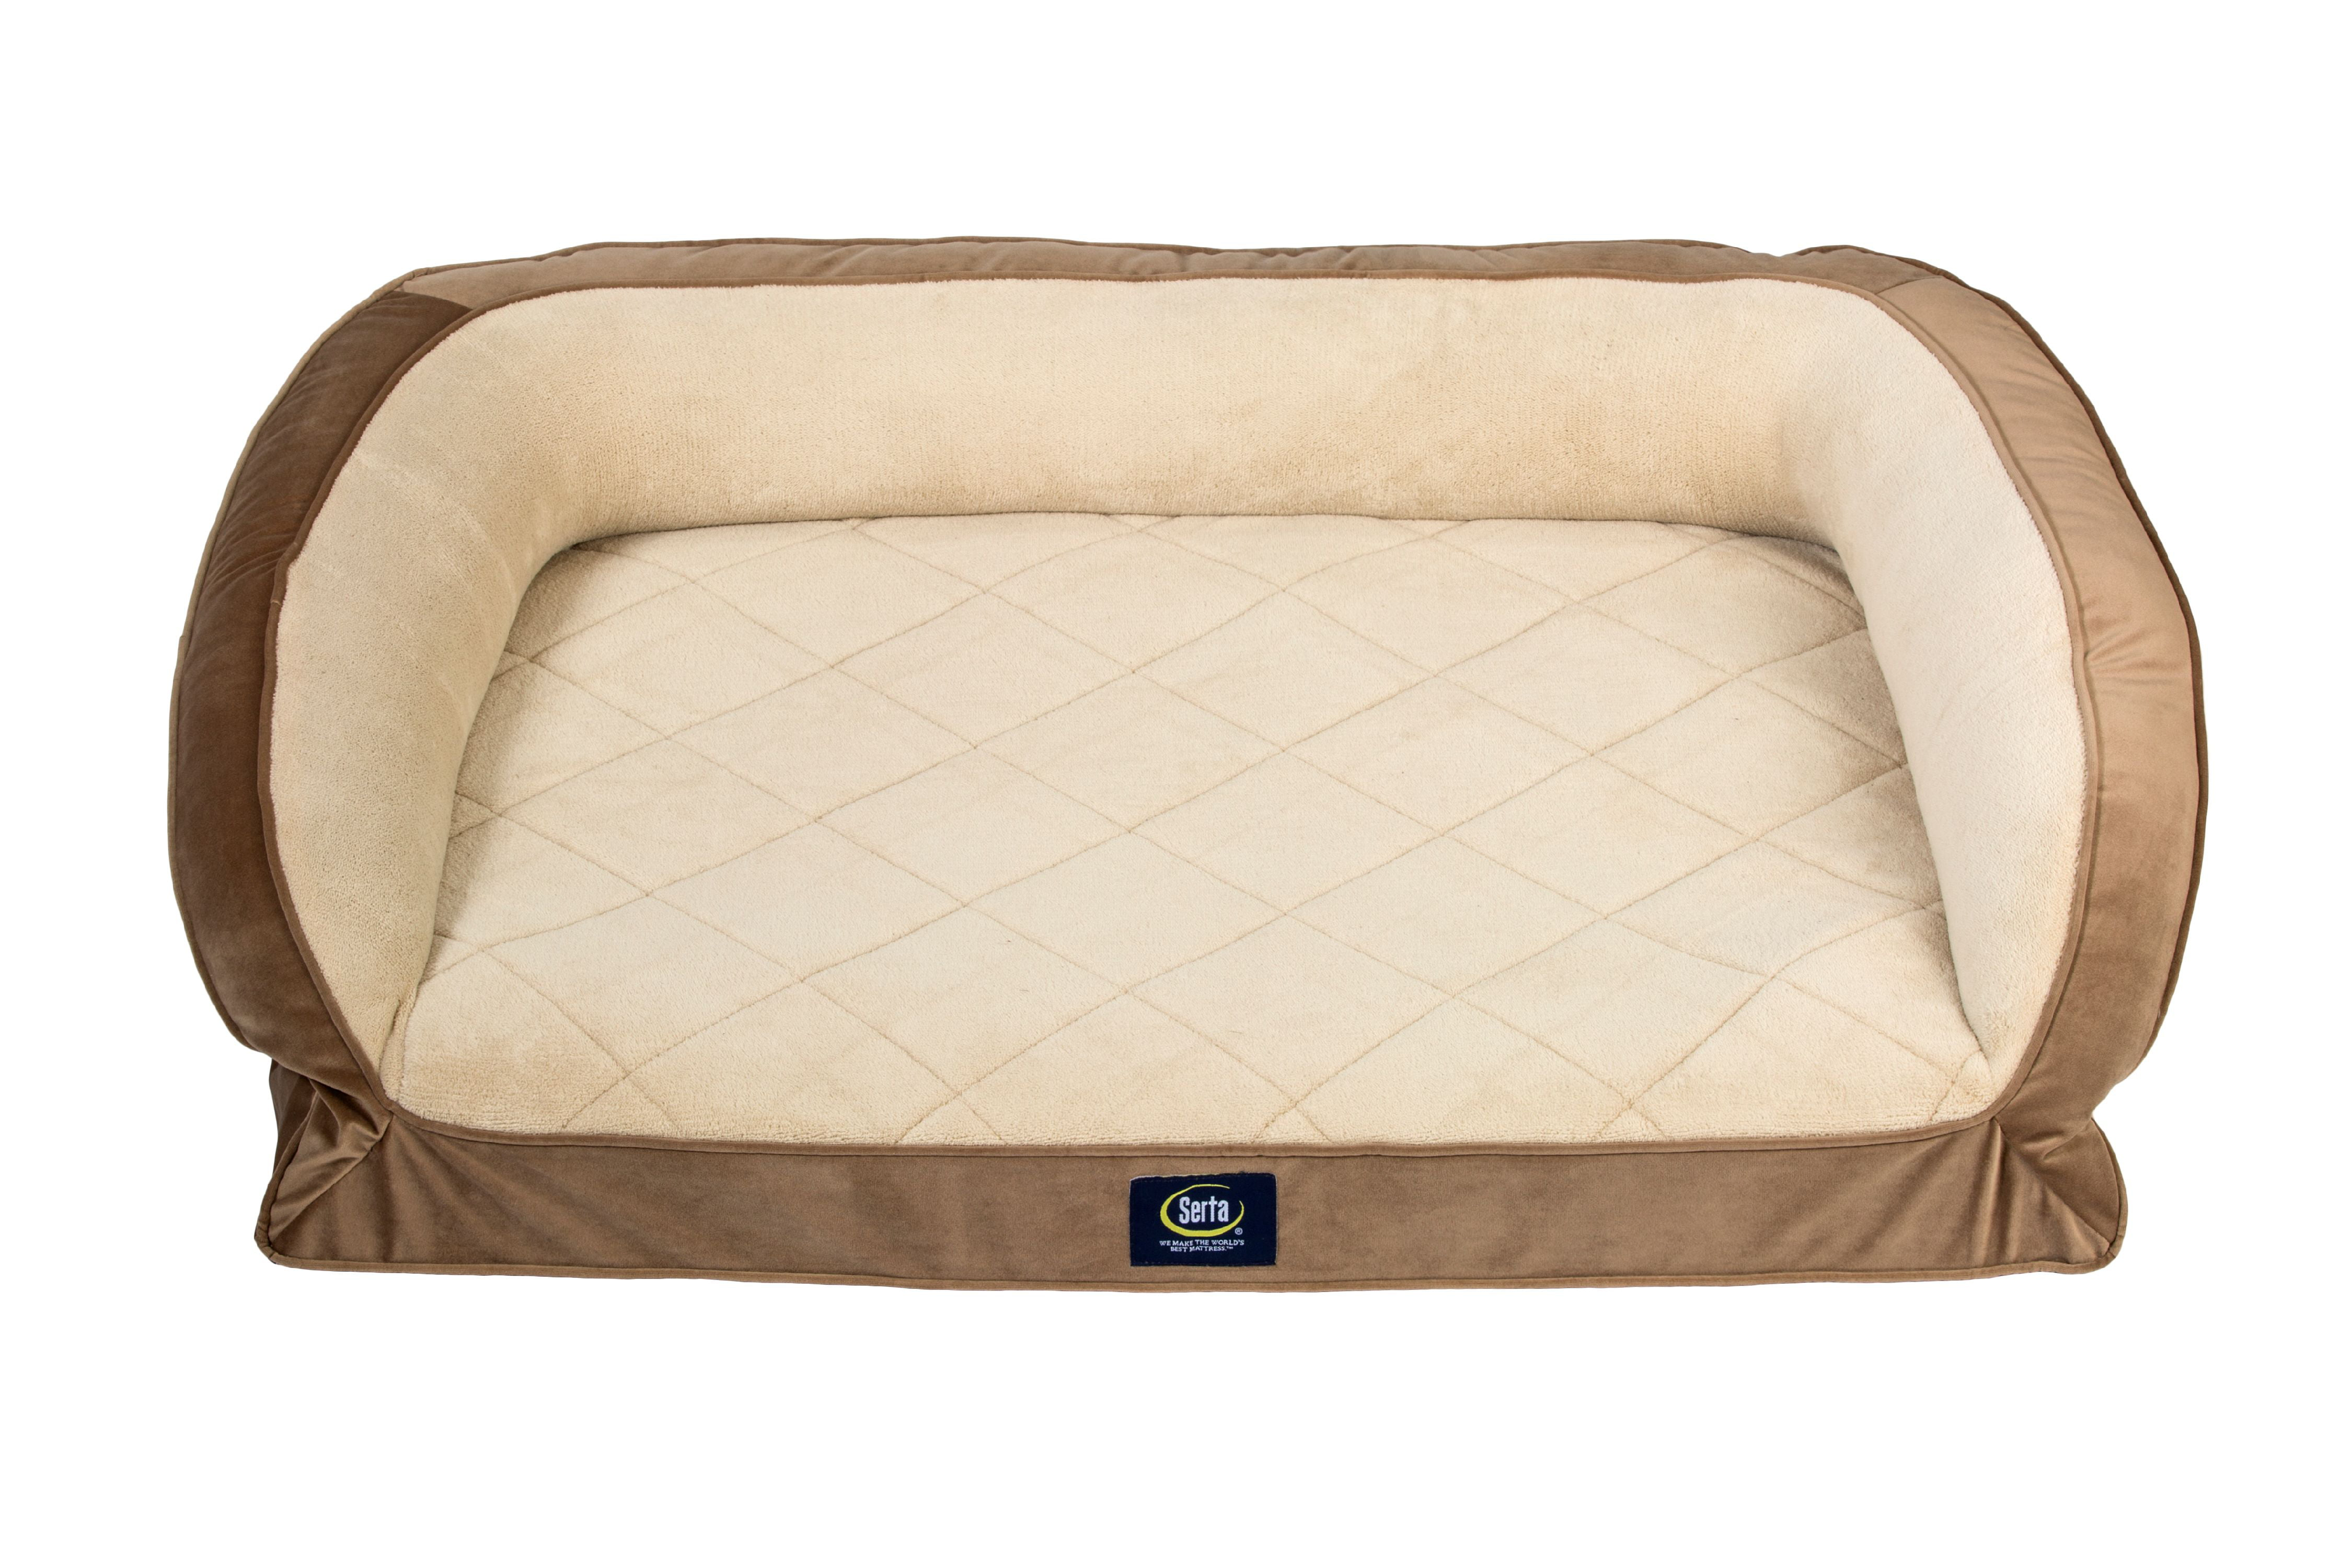 Incredible Sertapedic Orthopedic Quilted Couch Dog Bed 36 Color May Vary Walmart Com Uwap Interior Chair Design Uwaporg